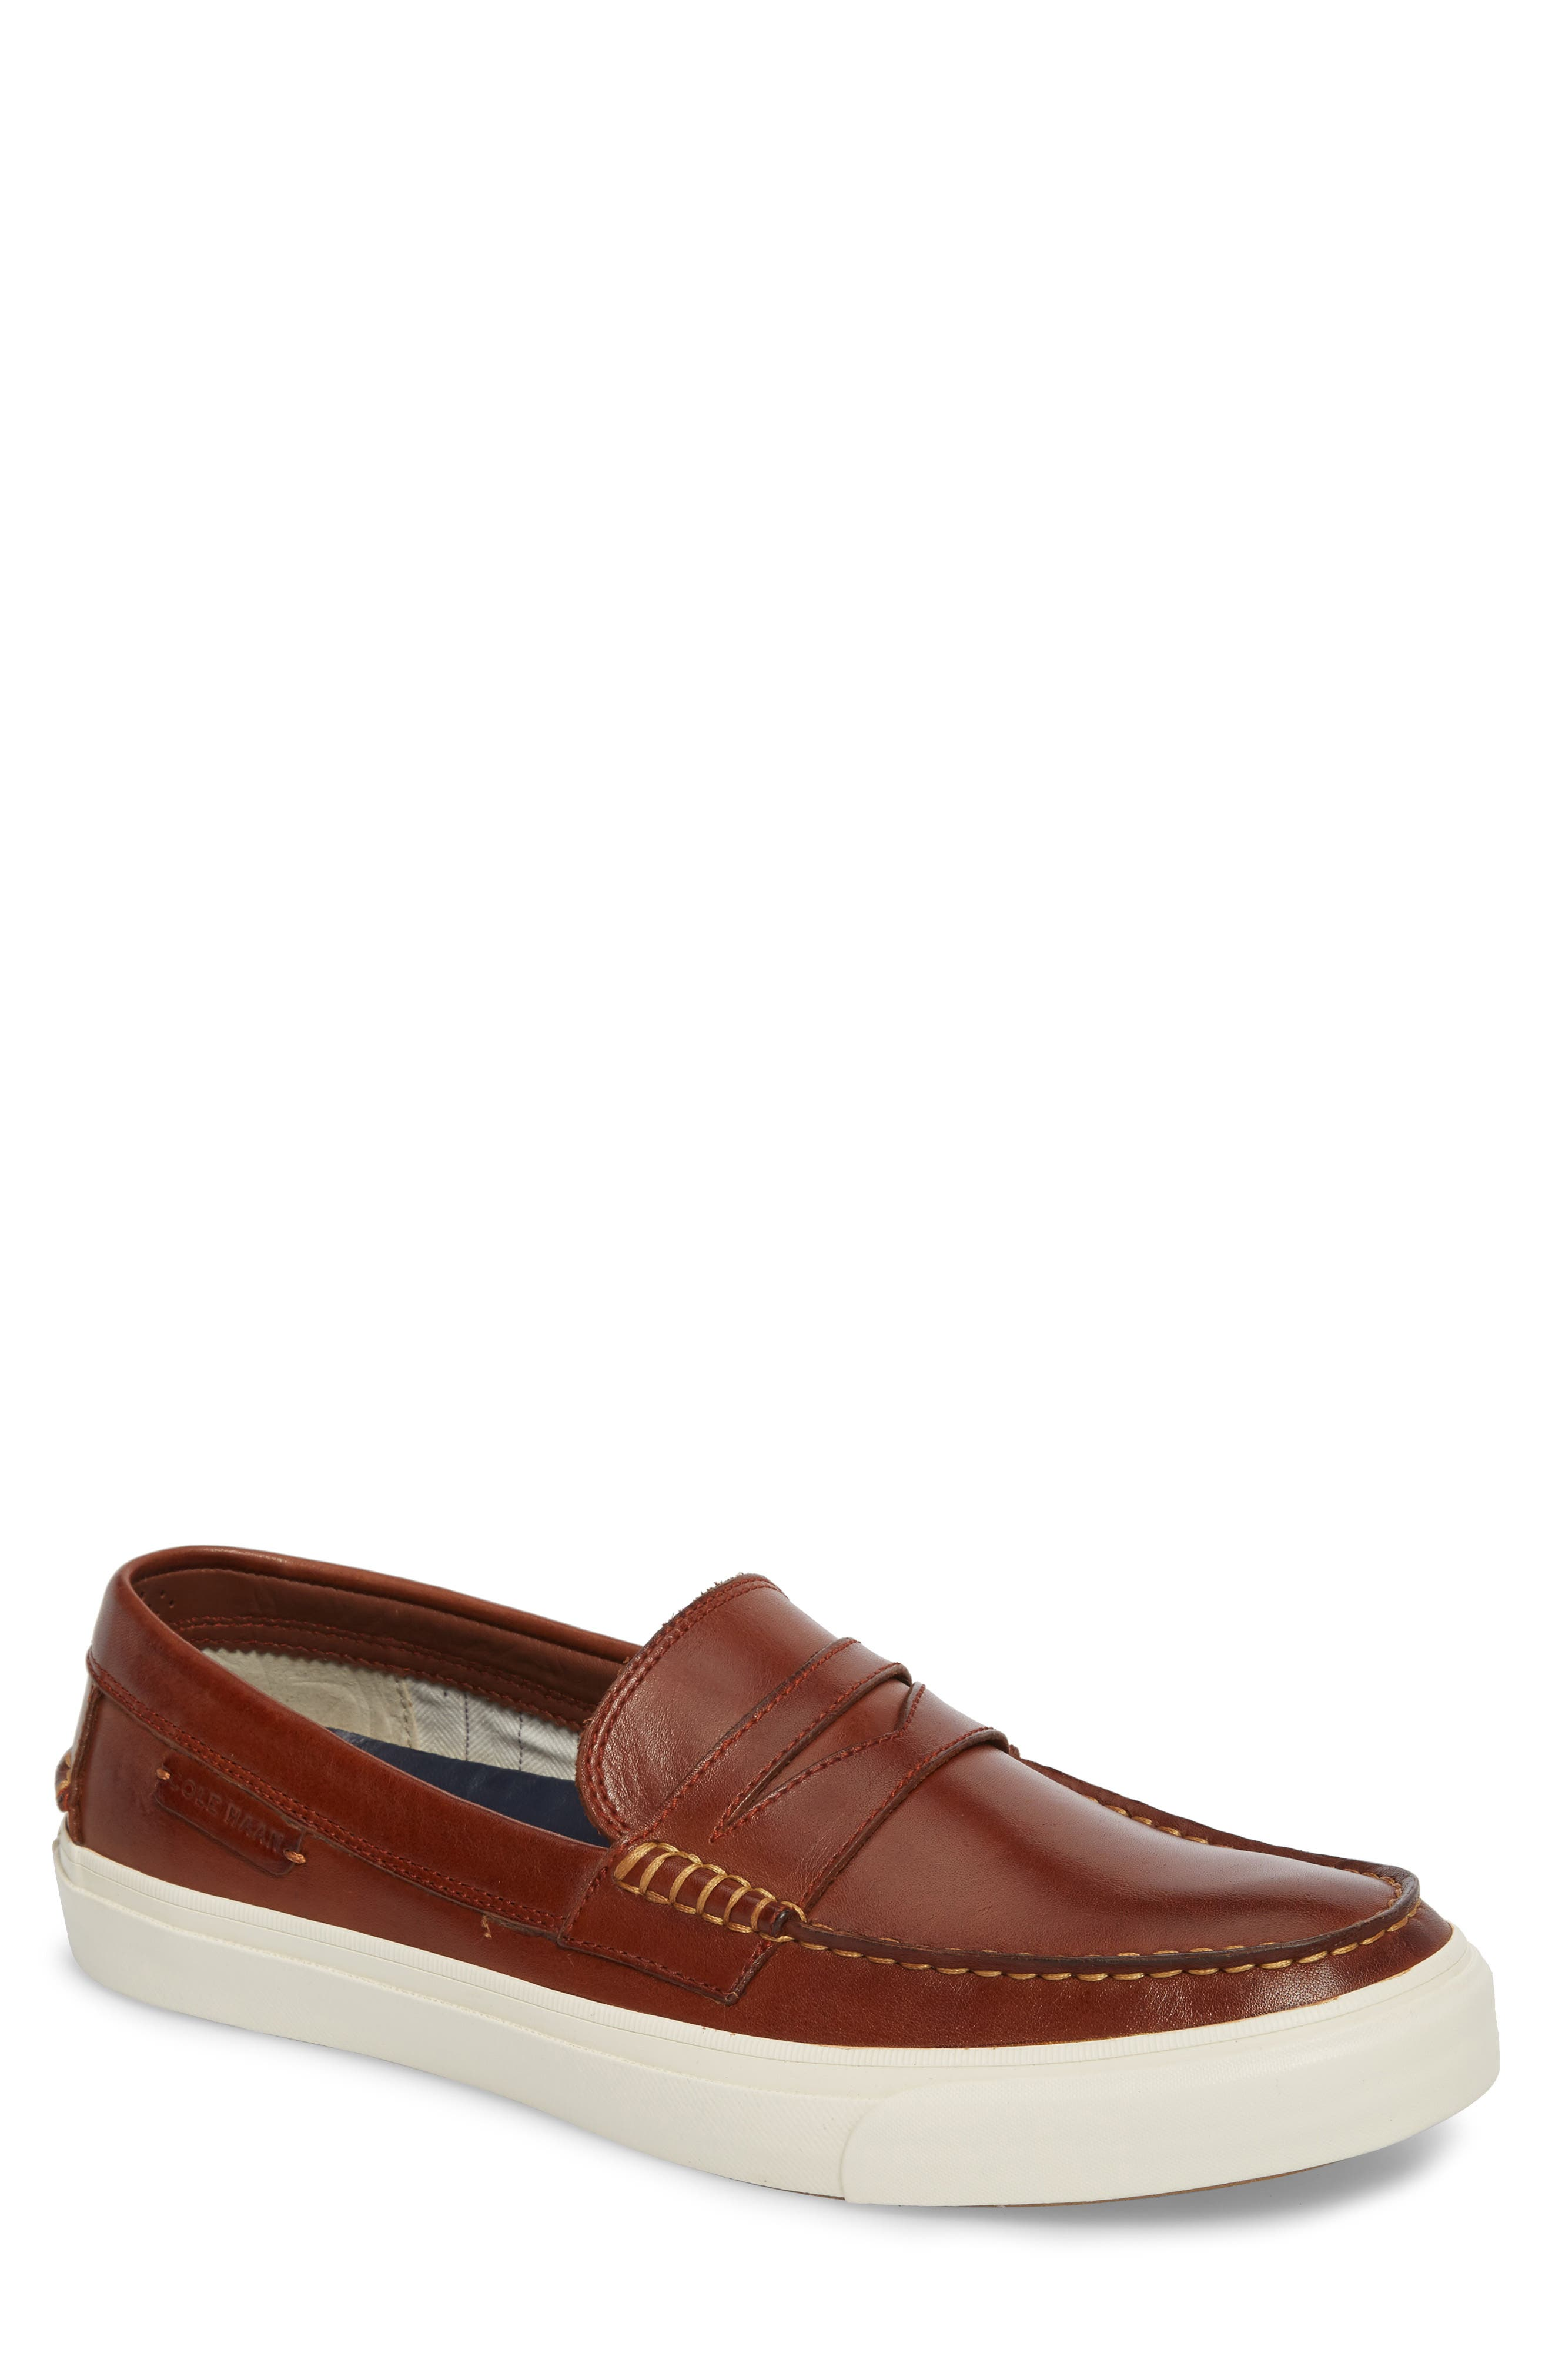 Pinch Weekend LX Penny Loafer,                             Main thumbnail 4, color,